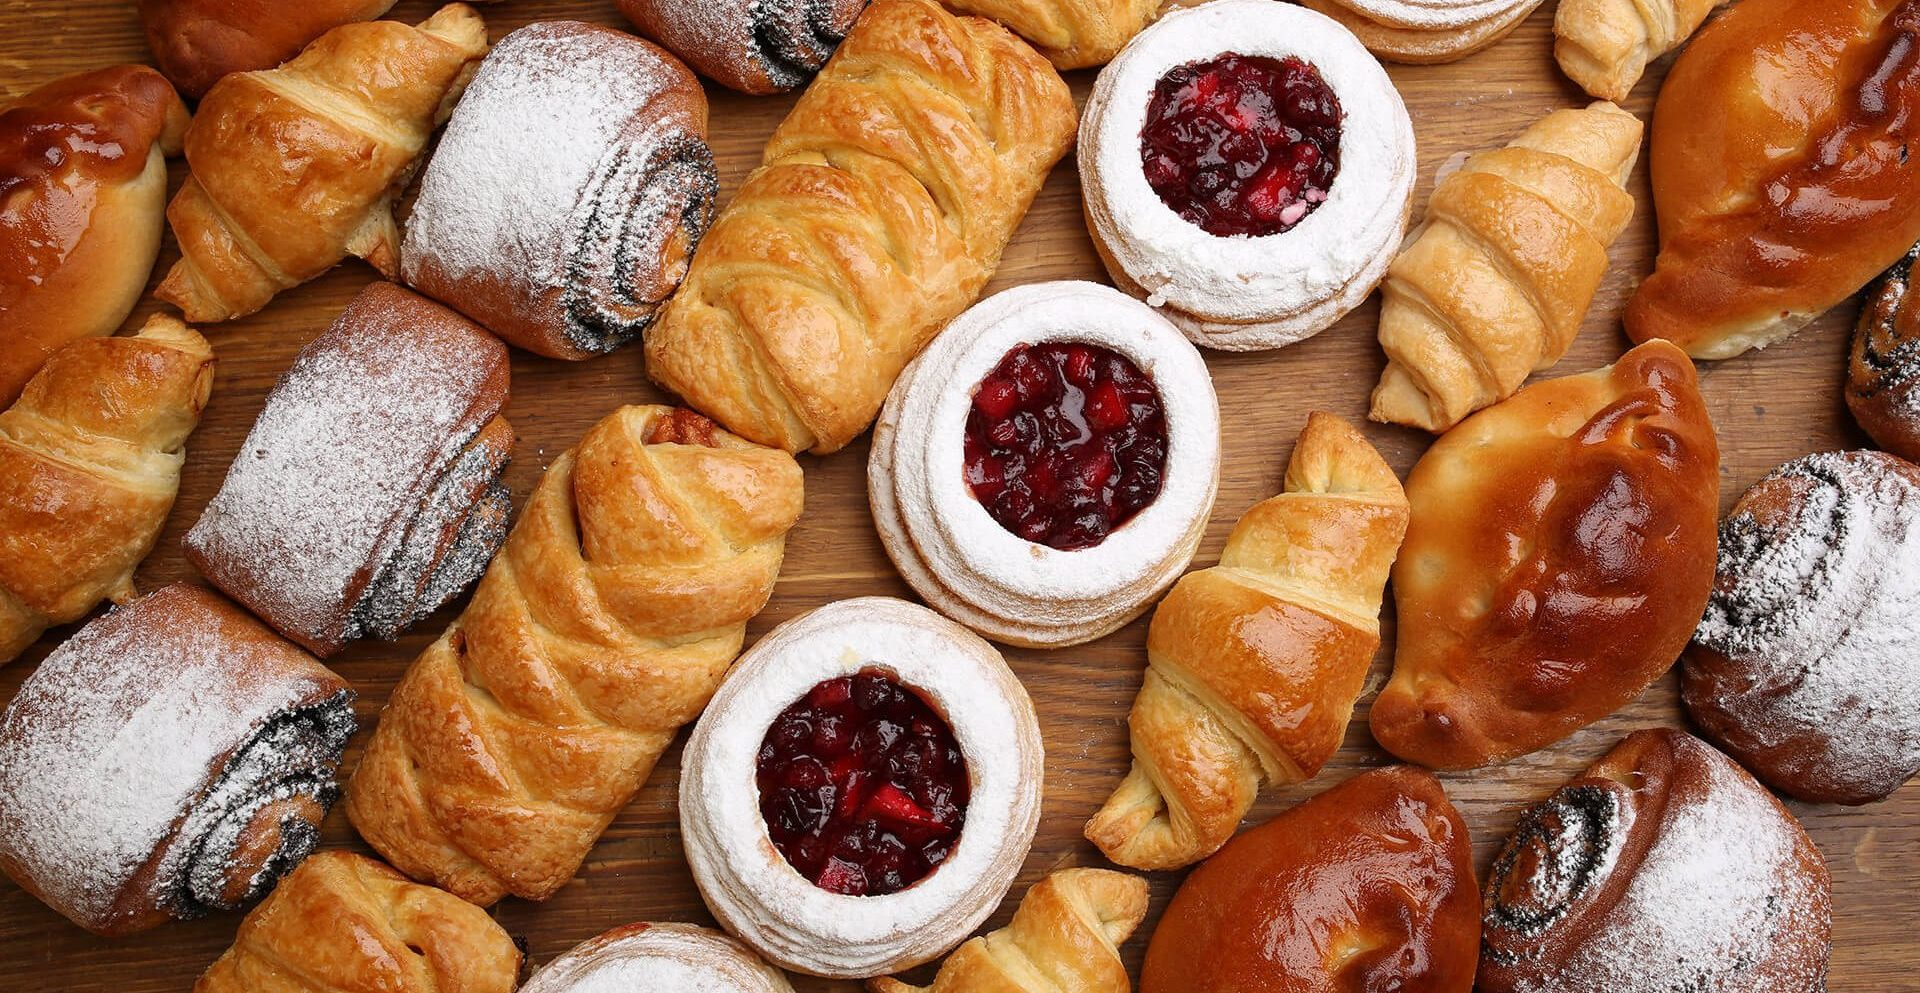 Range of health ingredient solution for sweet bakery, UT, RSPO (Roundtable on Sustainable Palm Oil), croissants, danish pastries, sweet breads, chocolate croissants, jam filled pastries, cinnamon bun